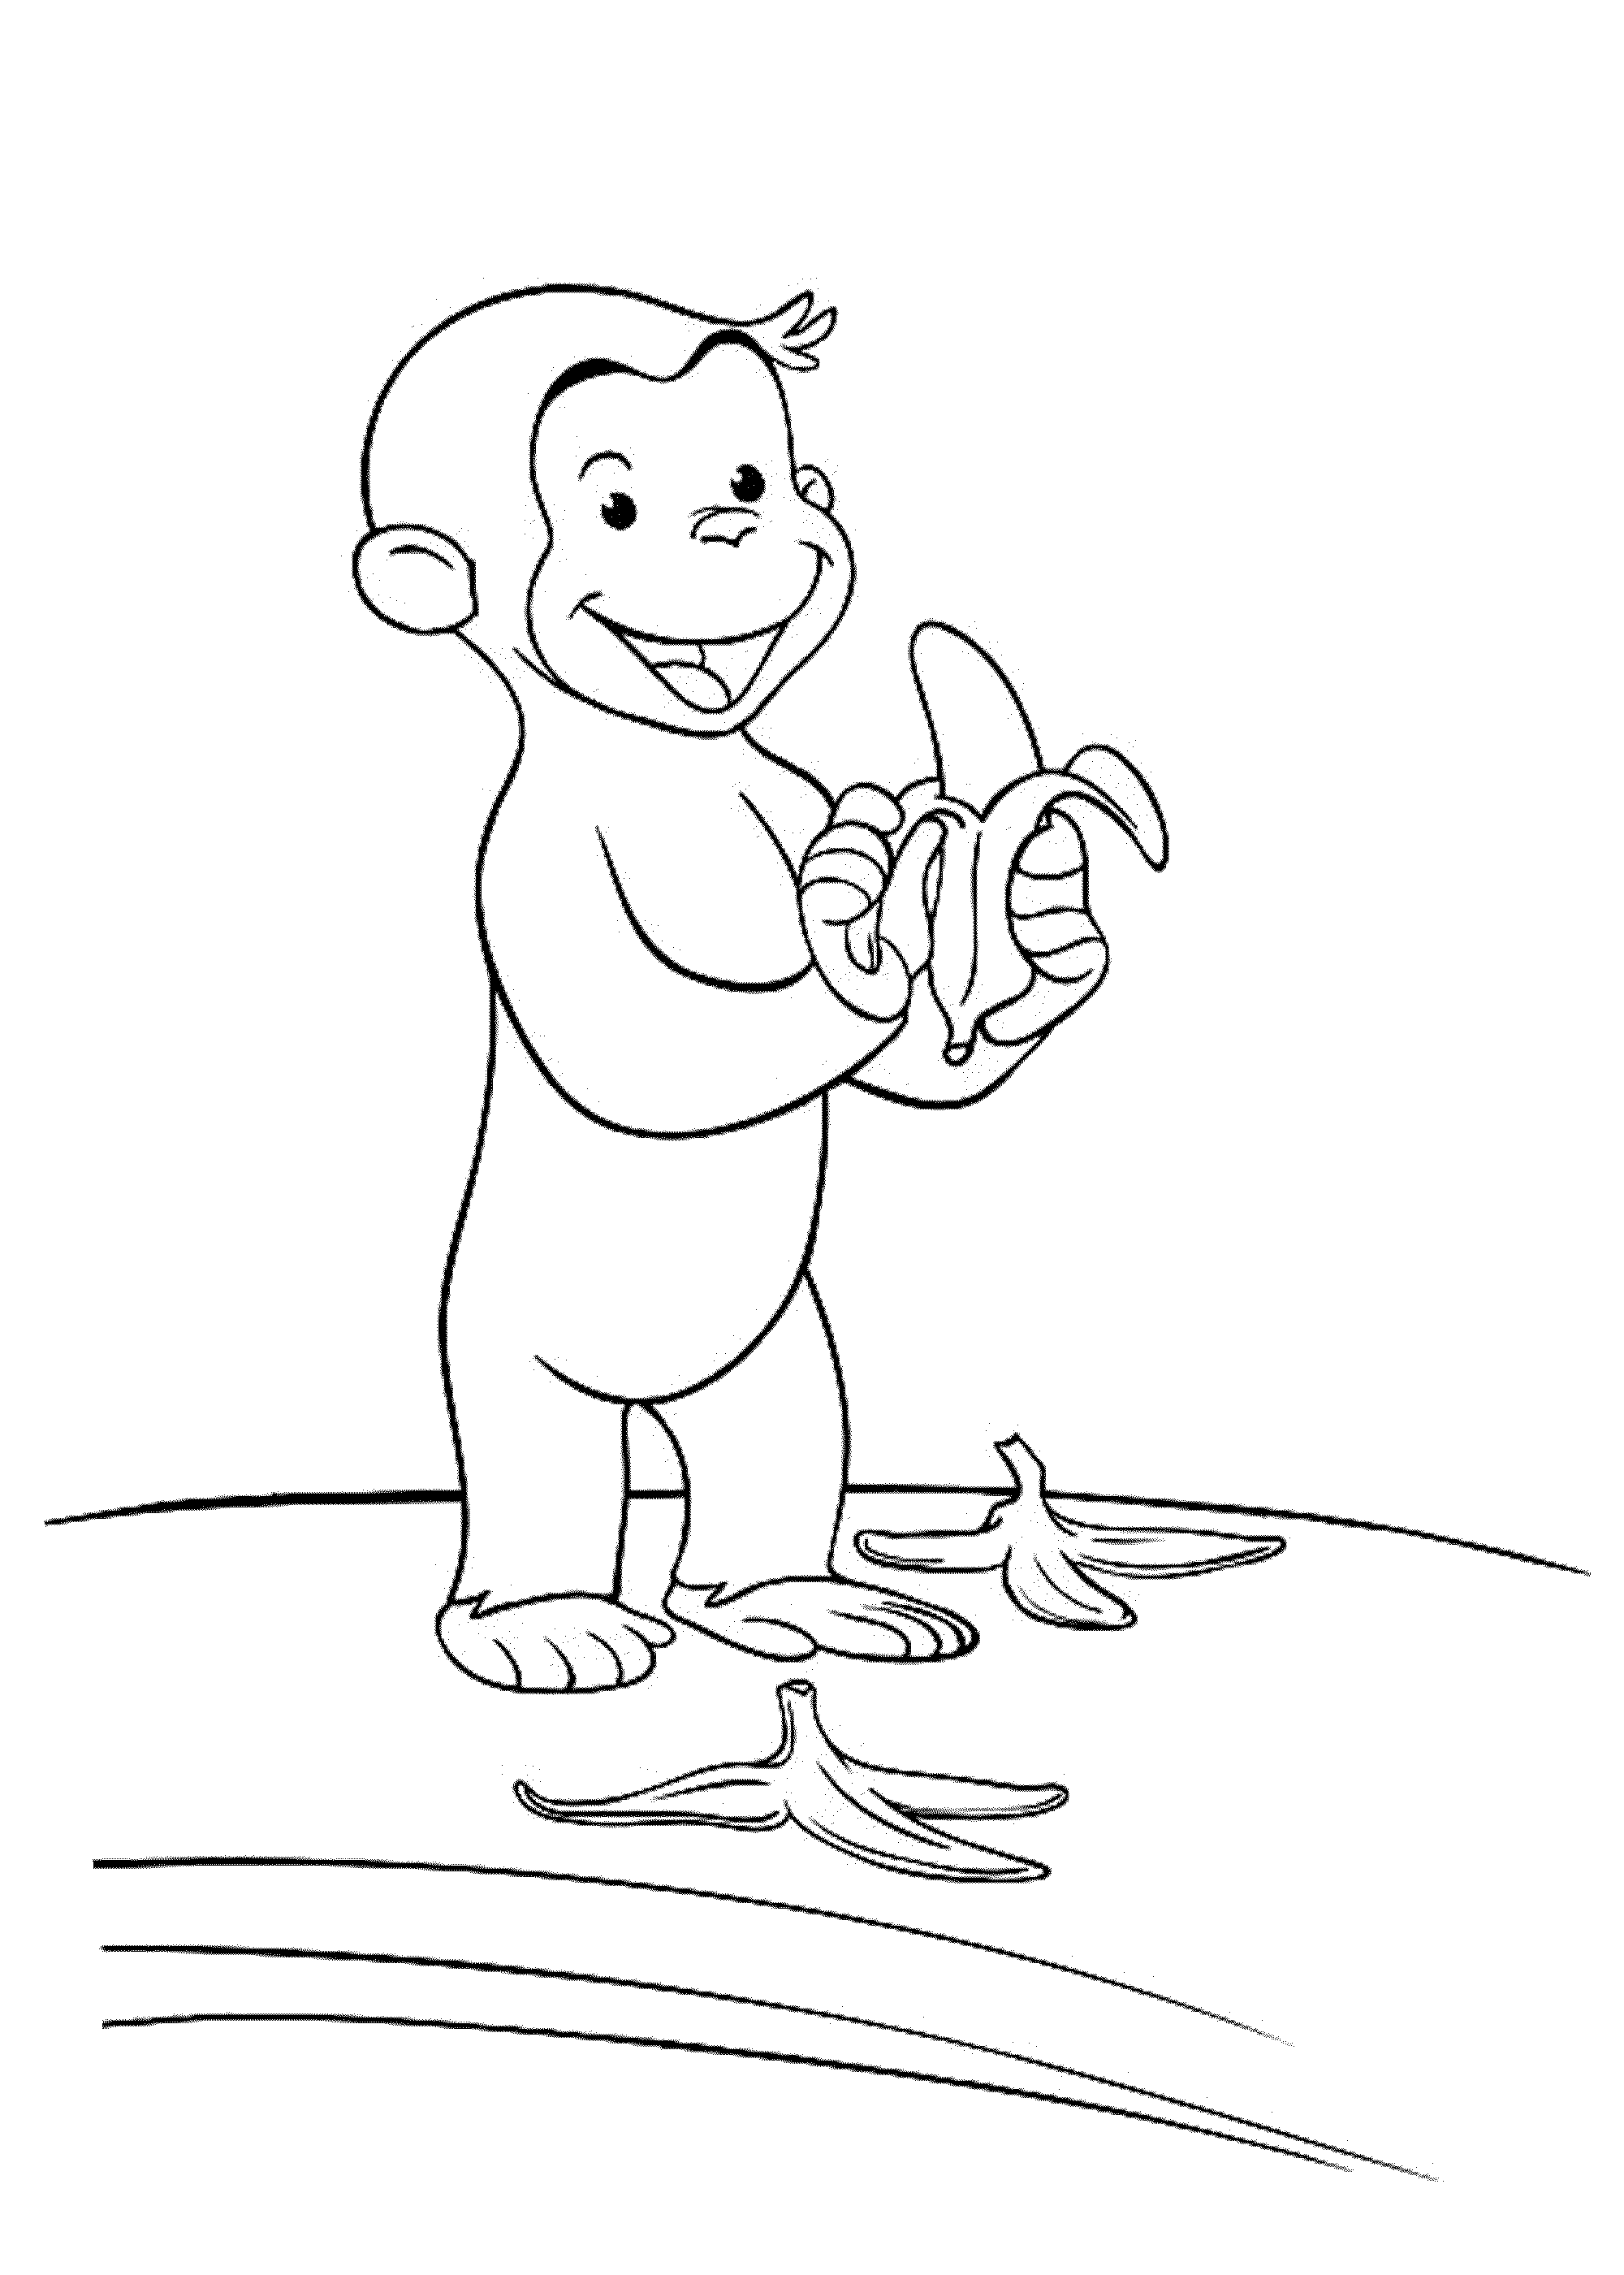 Coloring pages curious george printable - Curious George Eat Banana Coloring Pages Printable Free